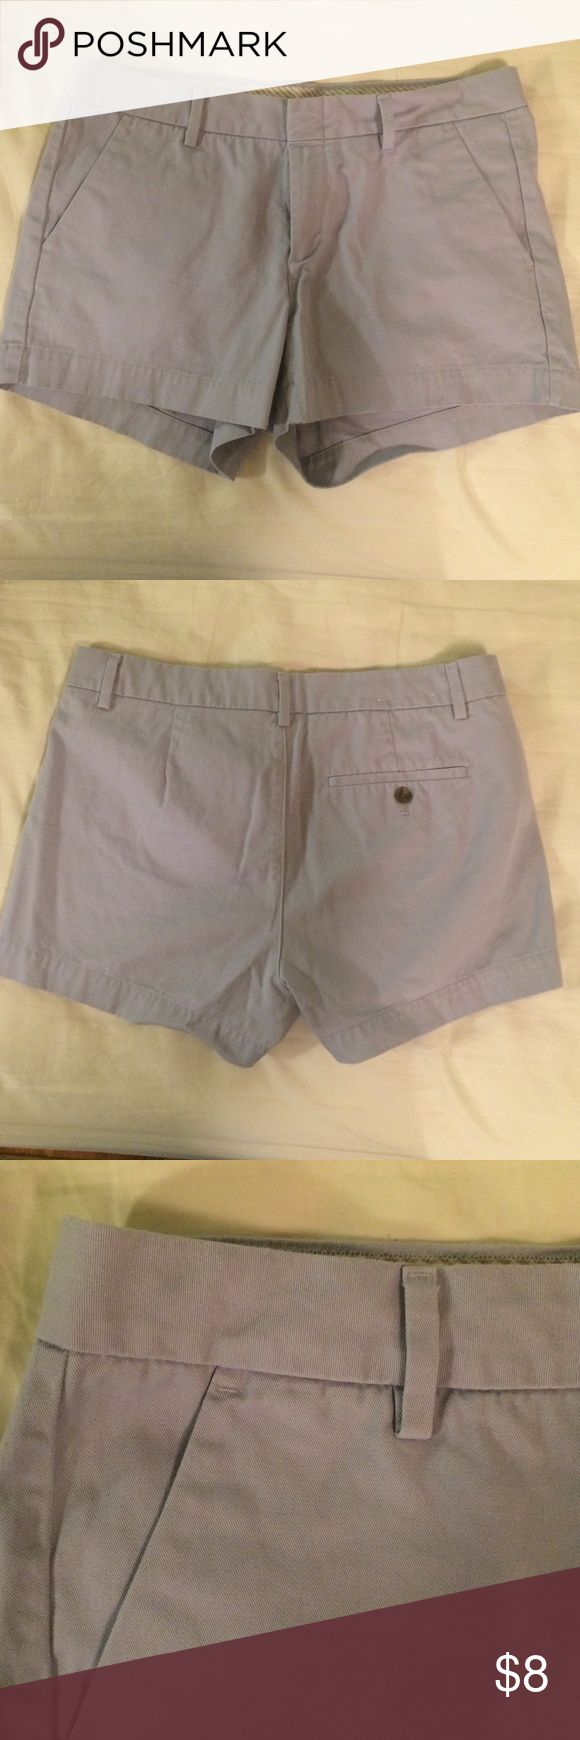 """LAST CHANCE! Uniqlo Light Blue Shorts Donating soon! Uniqlo shorts, size 6 (might fit a bit smaller than that though), 3"""" inseam. Color is powder blue/very light faded indigo. EUC: worn less than a handful of times, but too small for me now. Priced to sell quickly, and reasonable offers welcome! Also selling in an olive color; bundle and save! UNIQLO Shorts"""